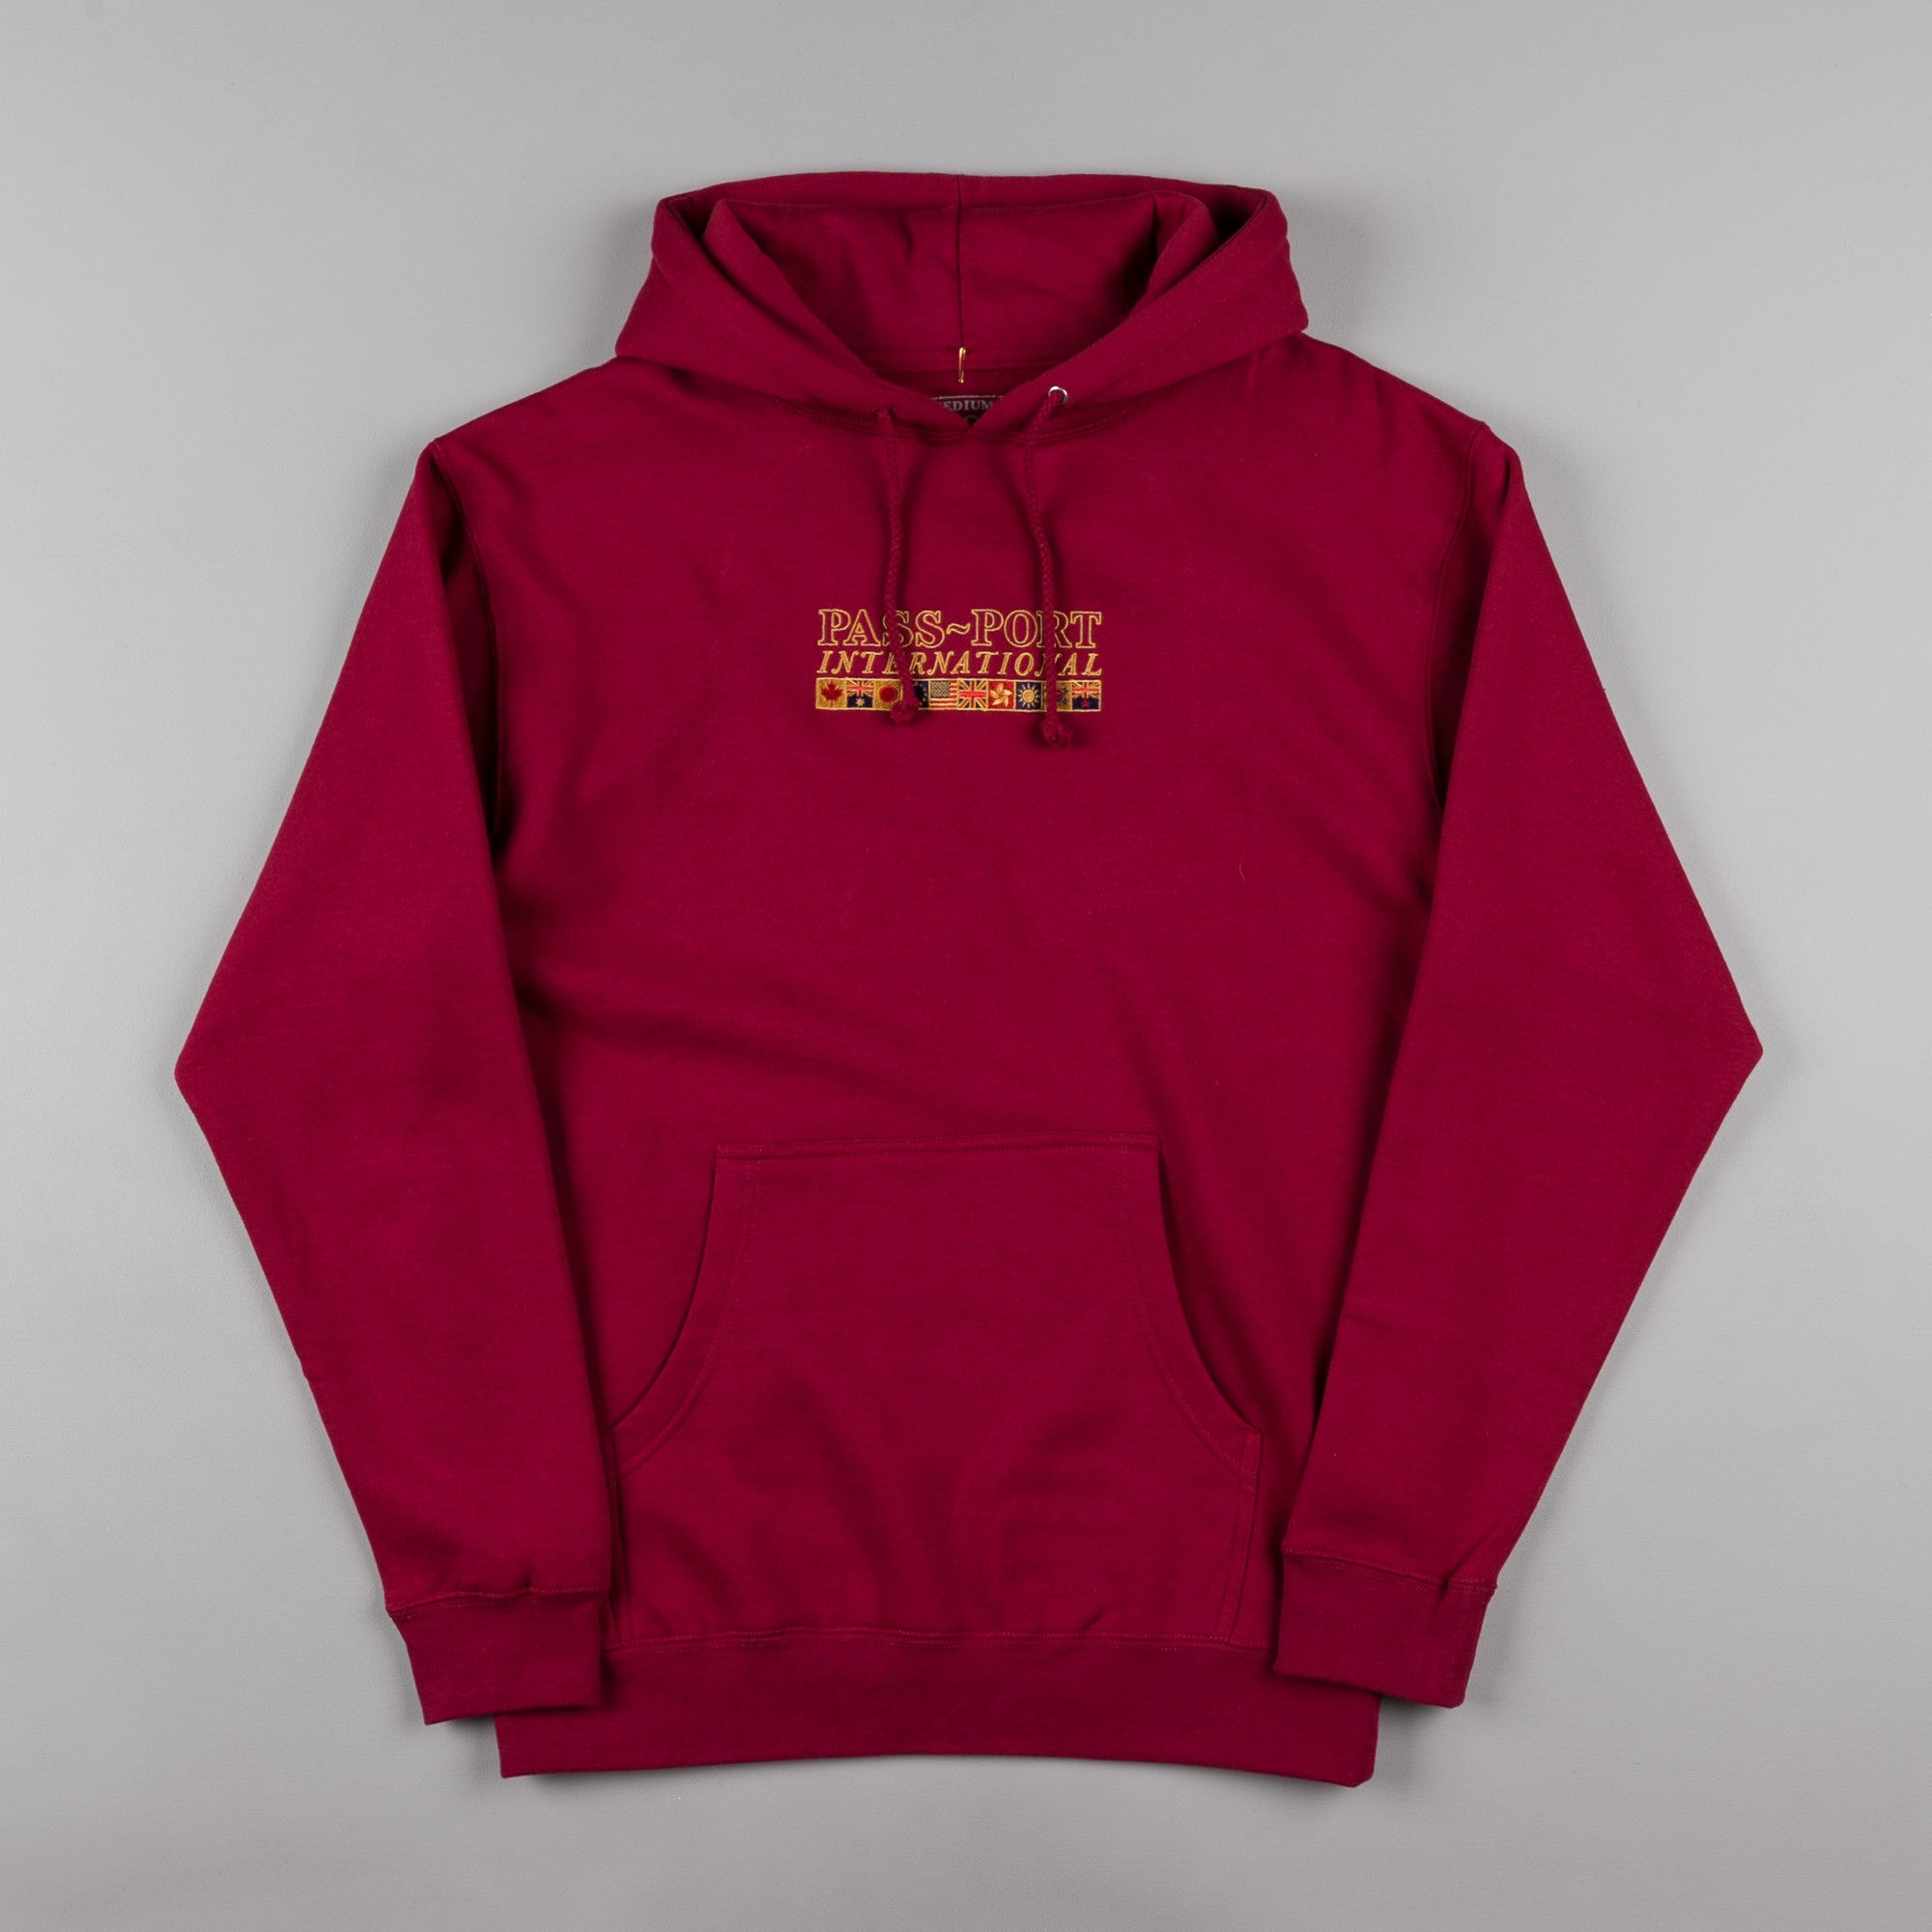 Pass Port International Embroidery Hooded Sweatshirt - Cardinal Red